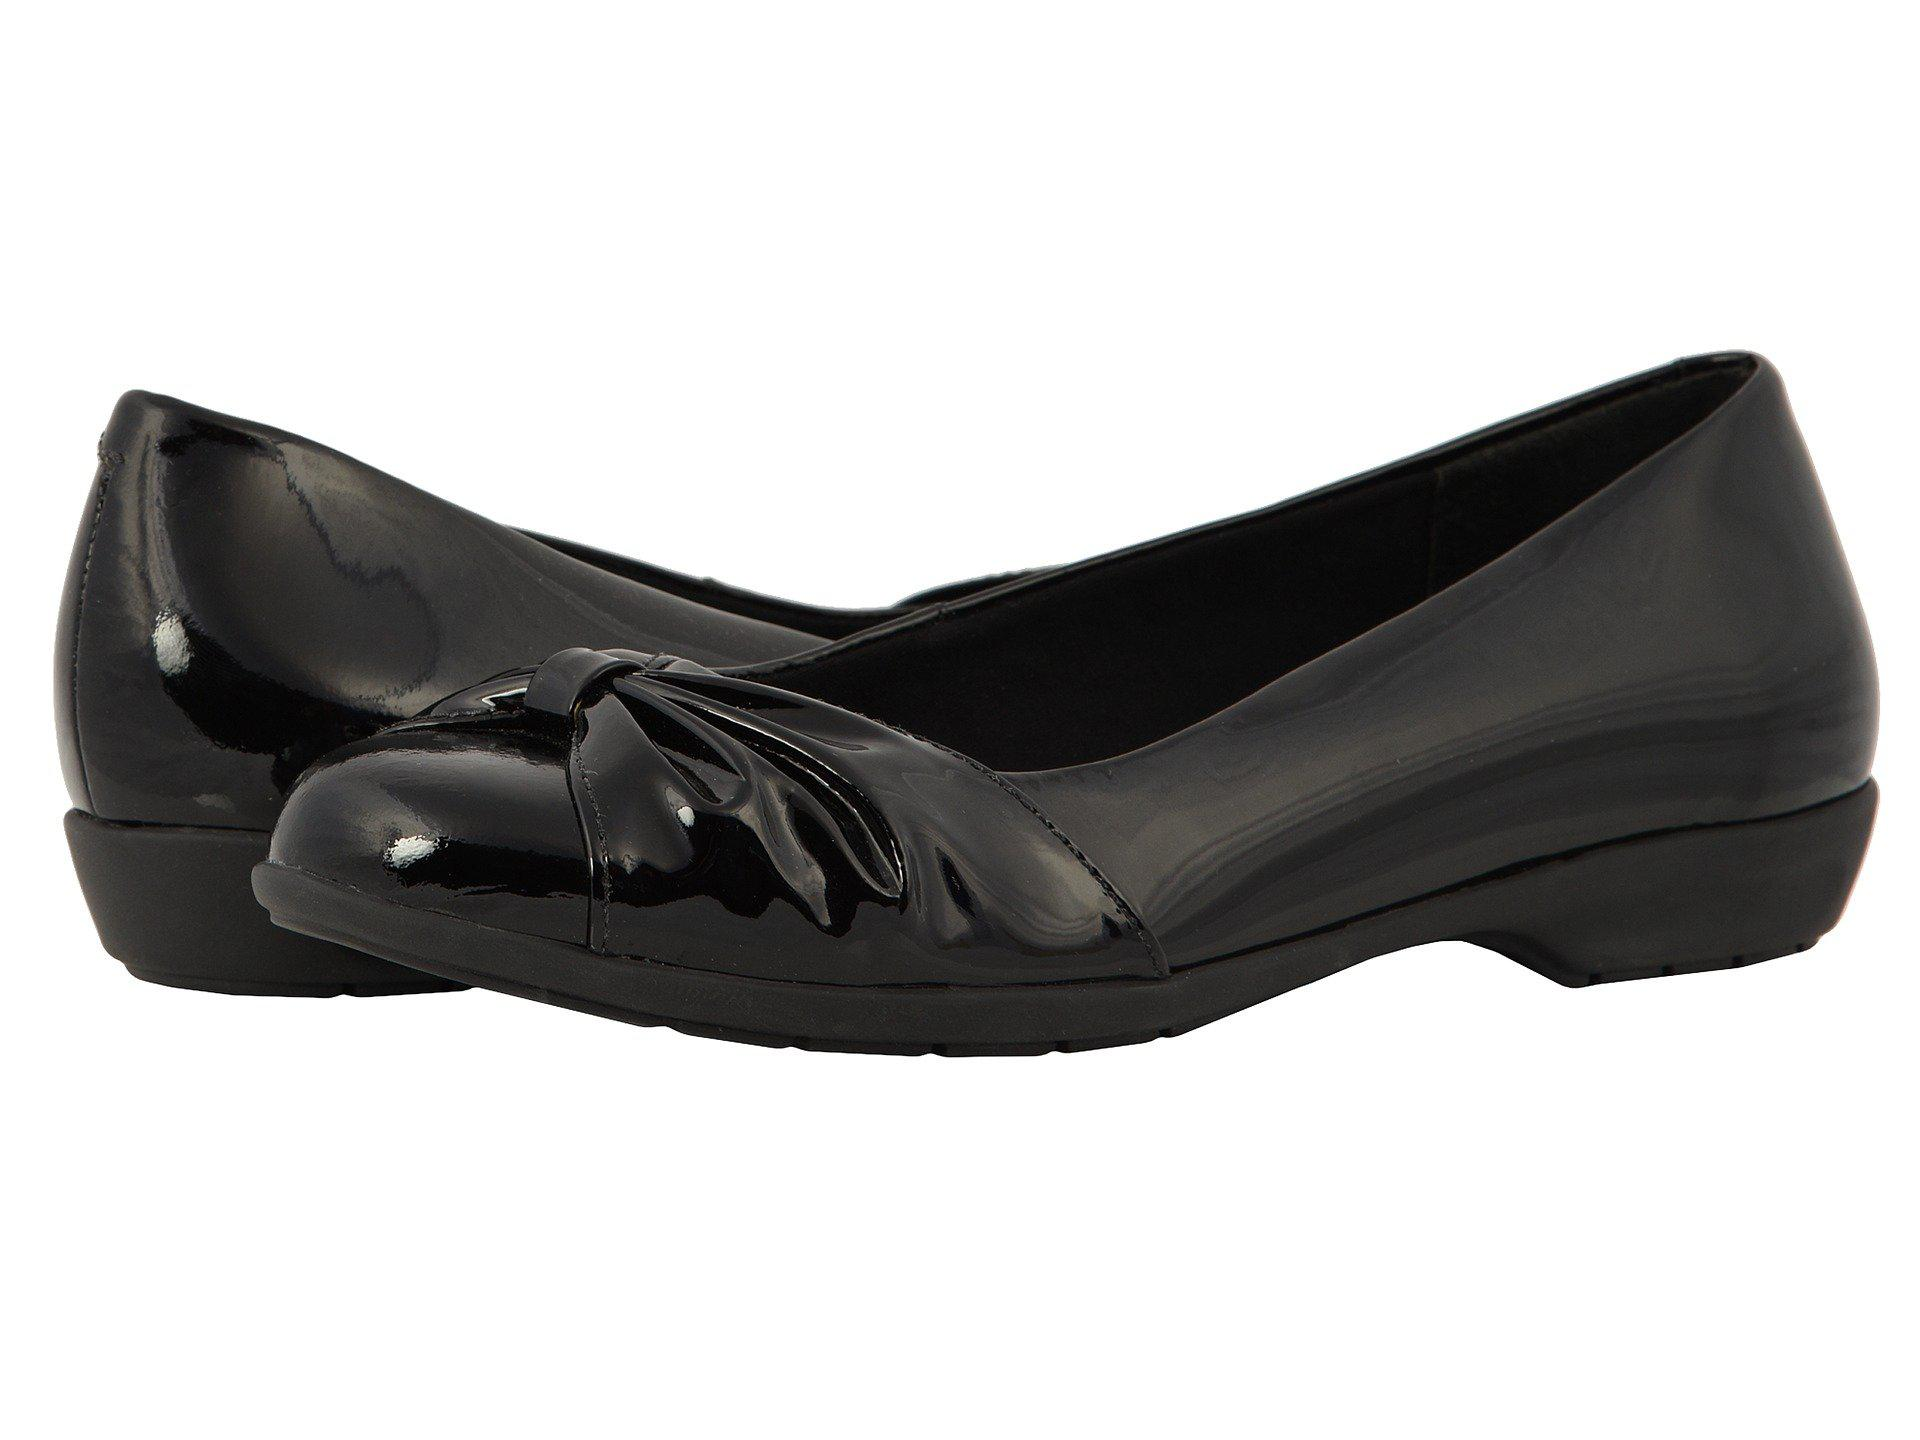 c0d3d822f1 Lyst - Walking Cradles Fall (black Patent Leather) Women's Shoes in ...